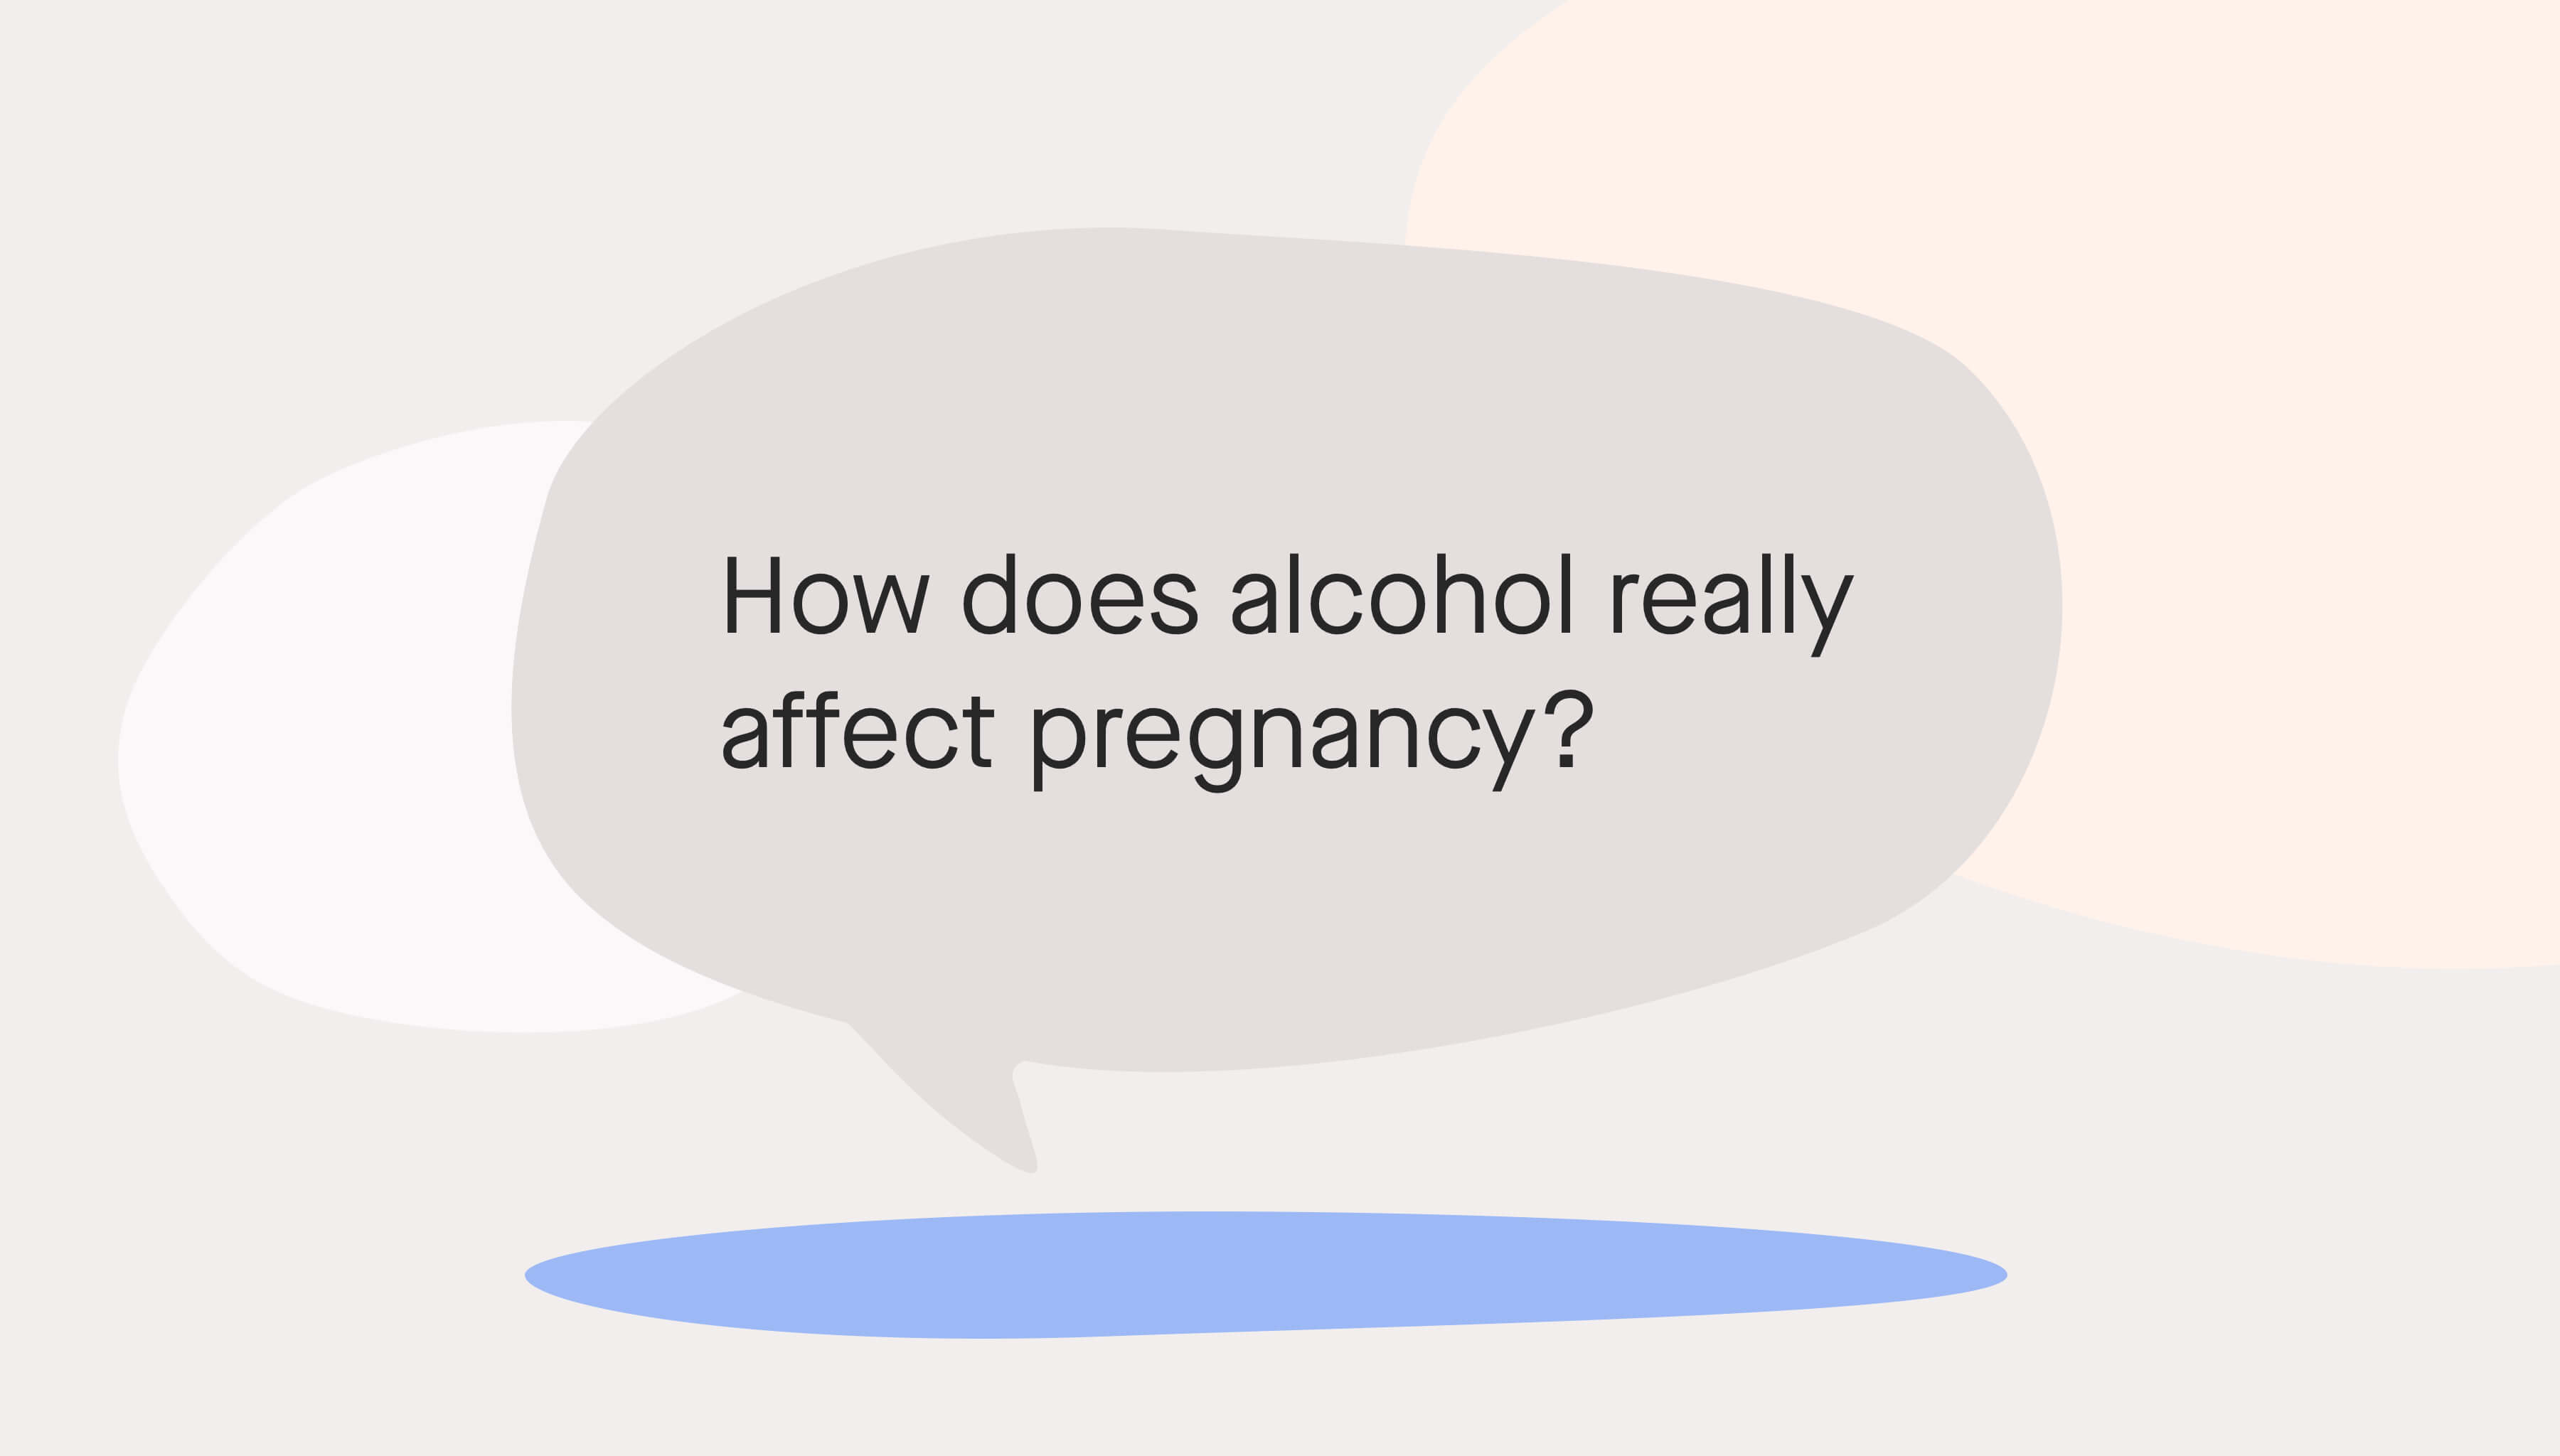 How alcohol affects pregnancy